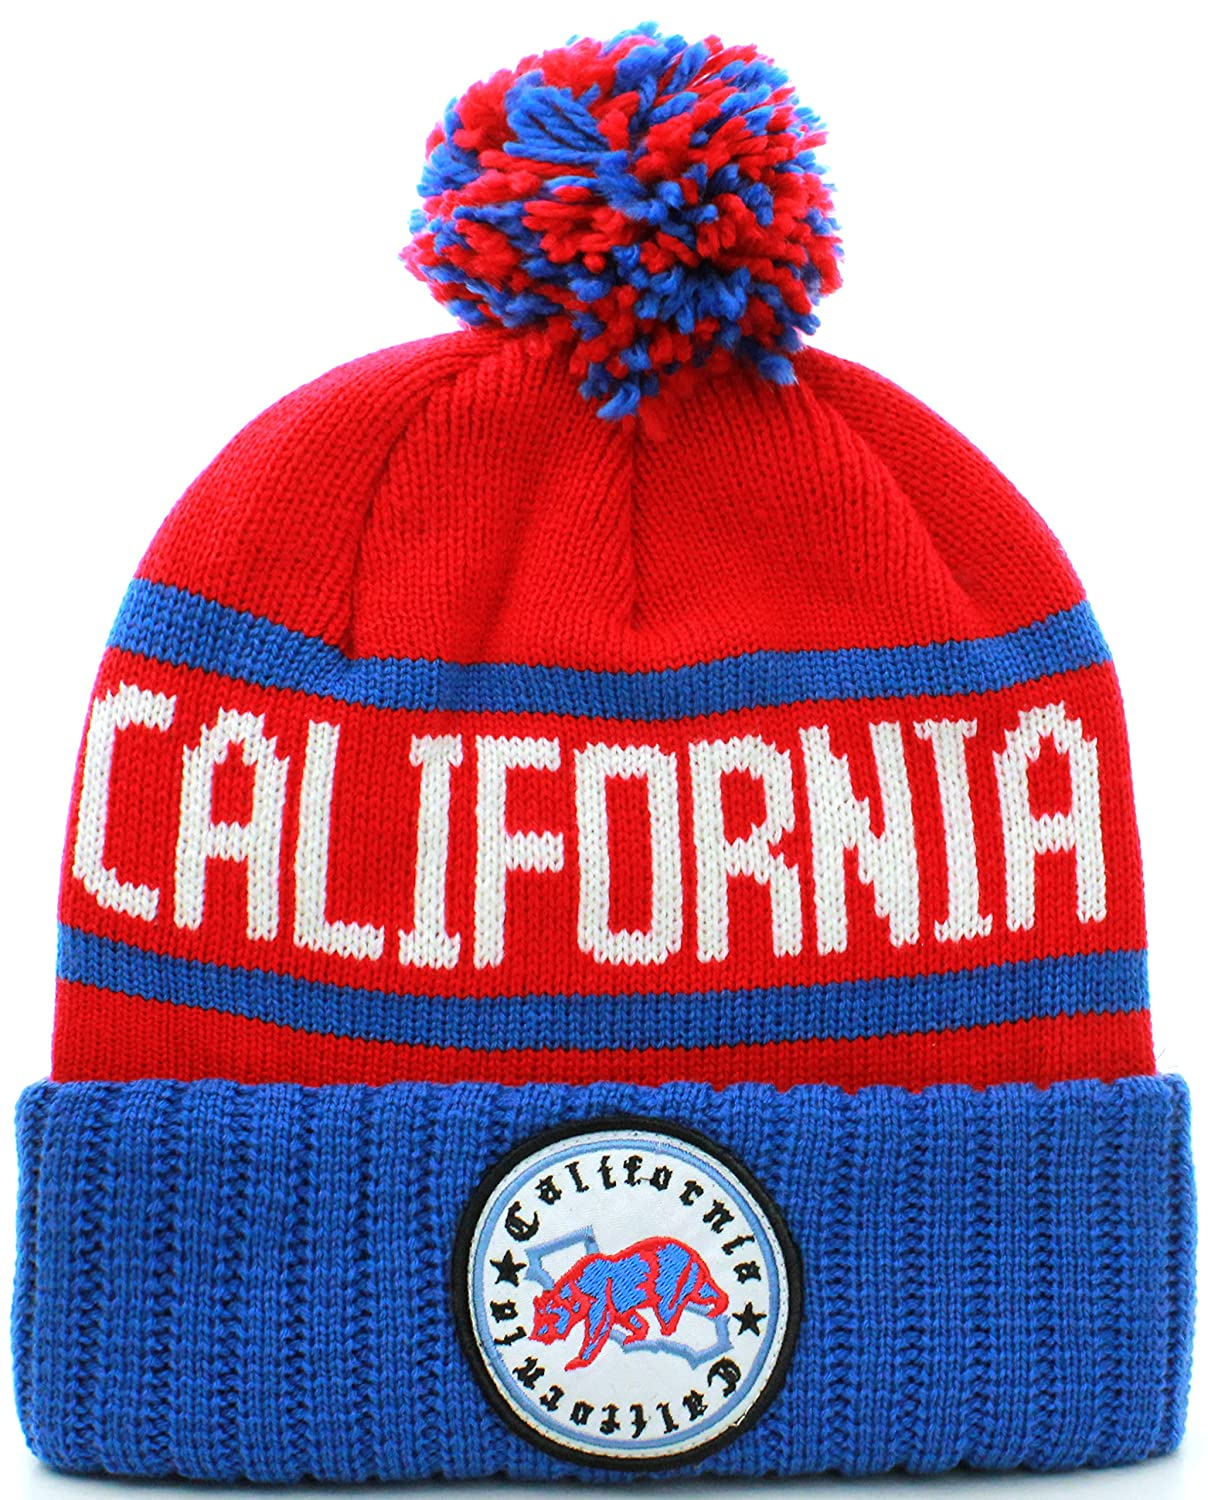 6093ccc50eb Absolute Clothing California Republic Cuff Beanie Cable Knit Pom Pom Hat Cap  at Amazon Men s Clothing store